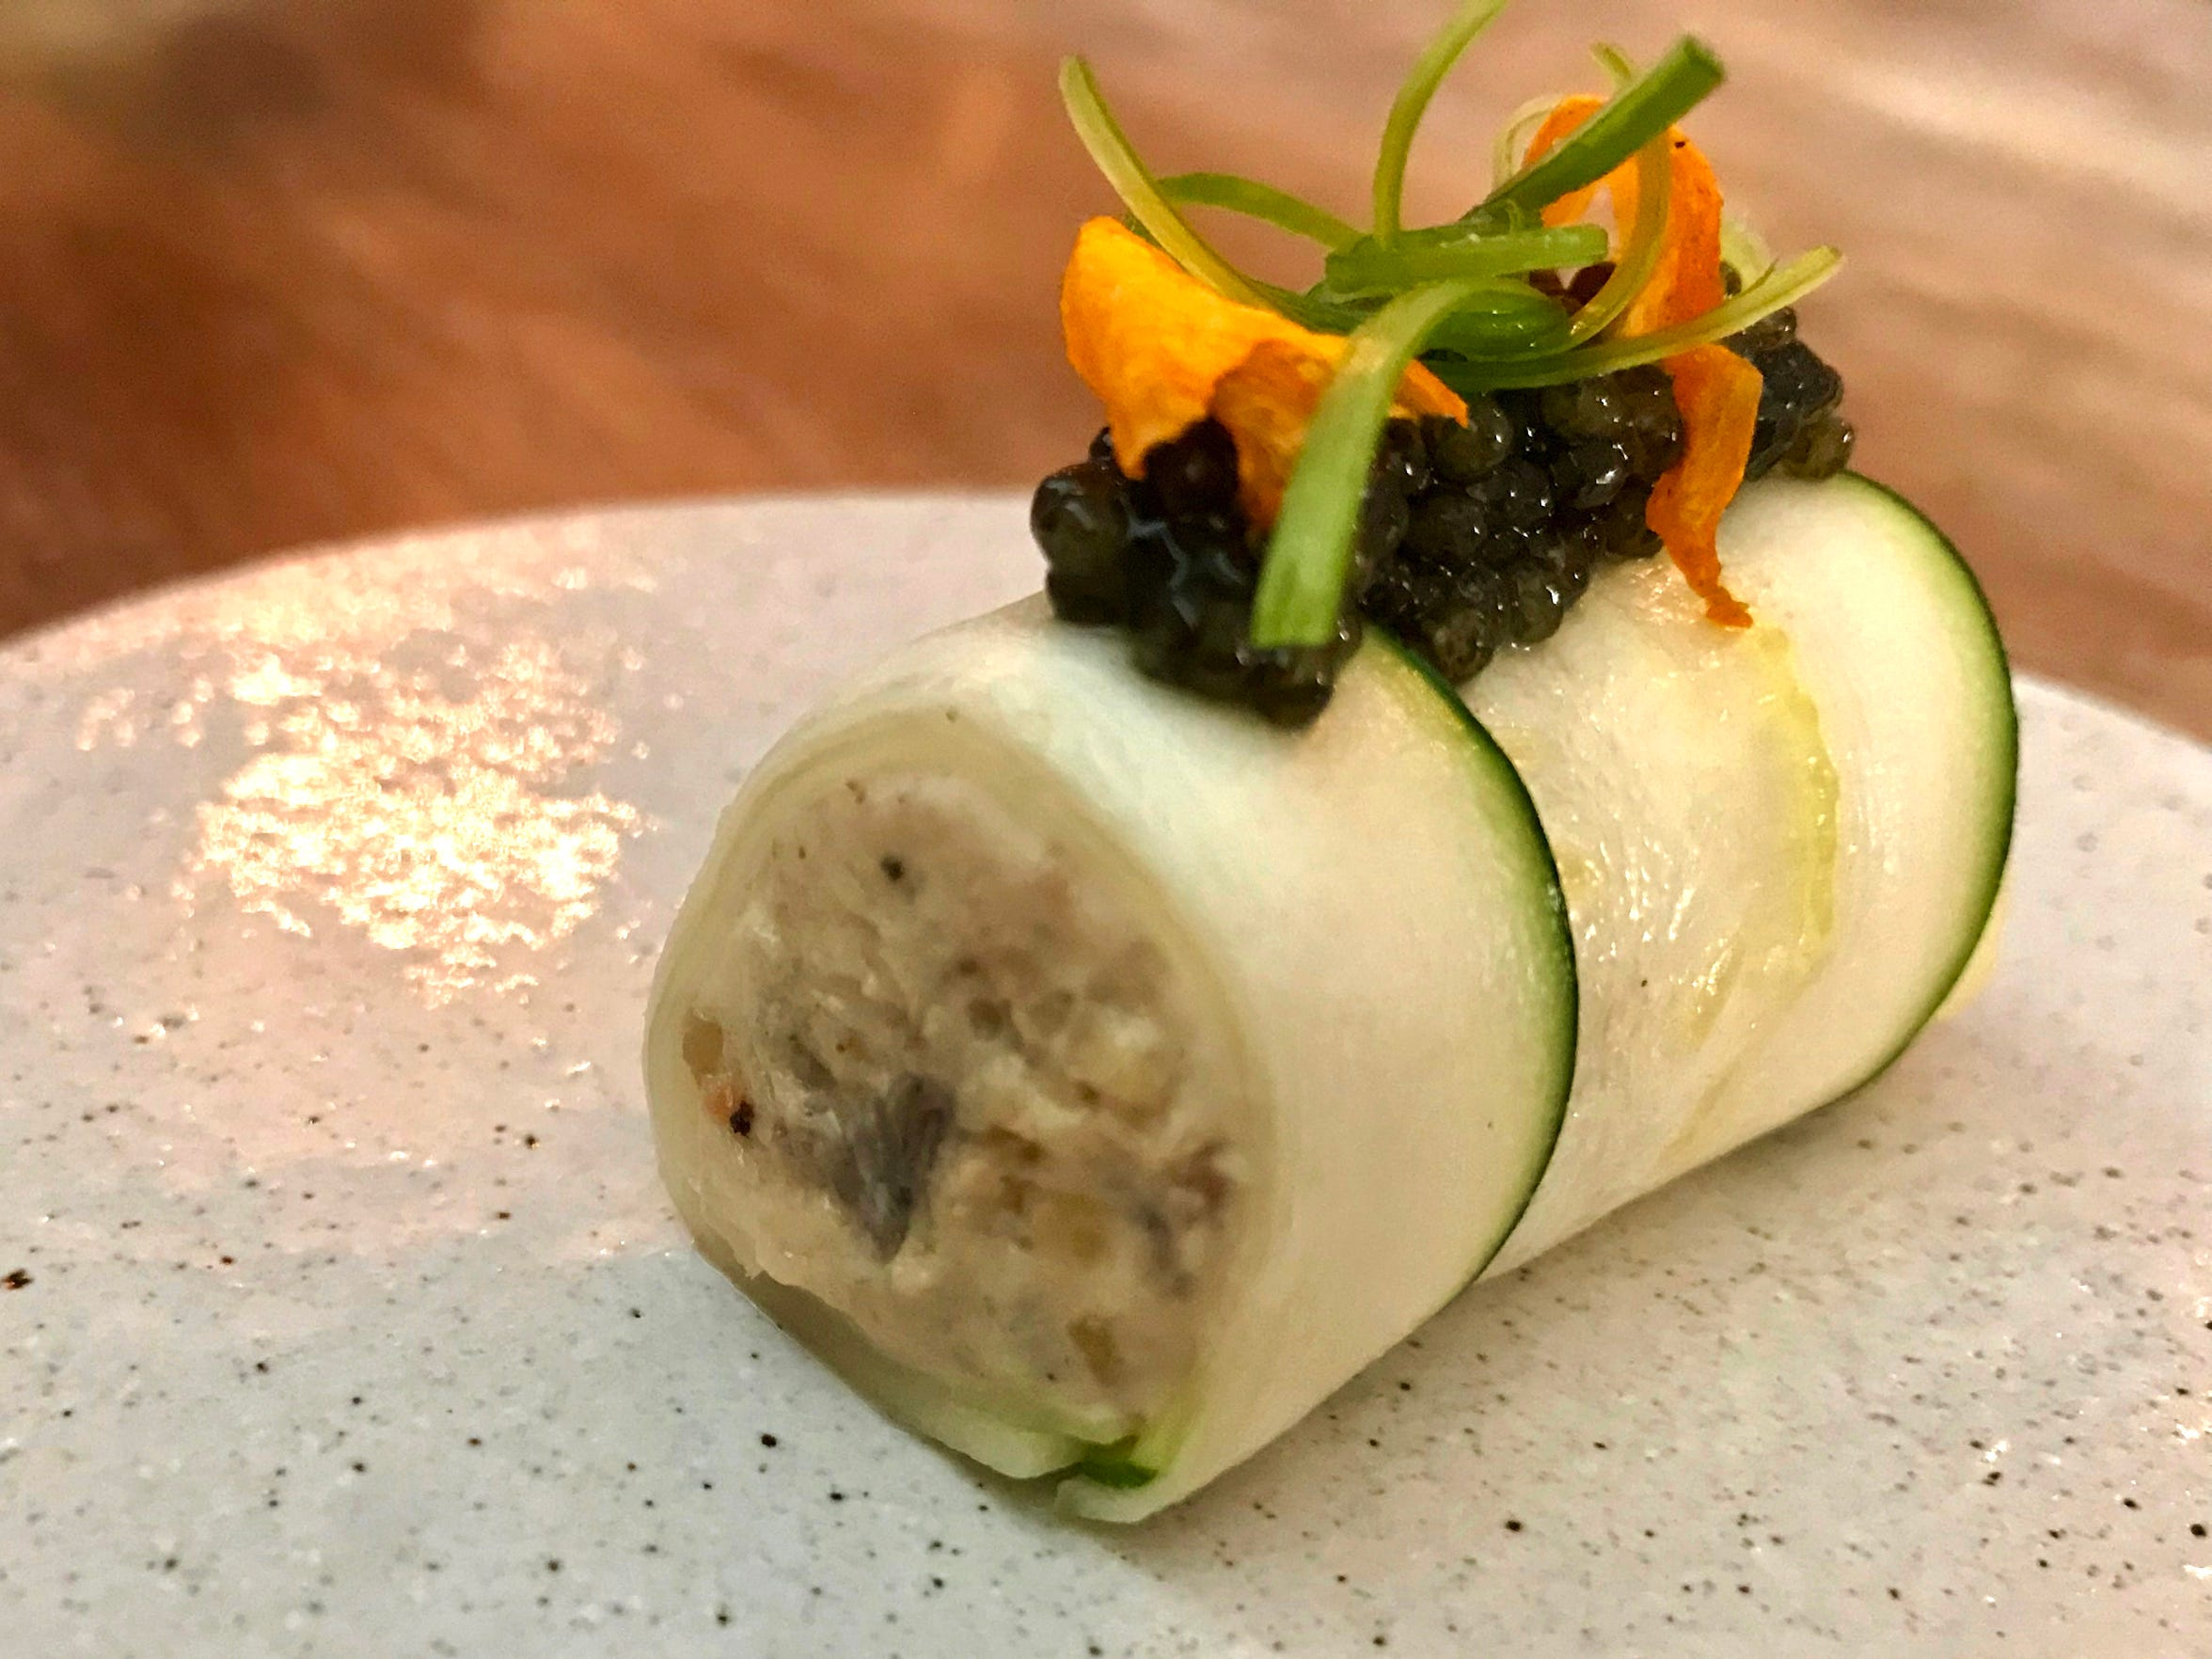 Caviar tops a creamy cylinder of eel that's wrapped in a thin slice of zucchini, one of the courses on the late-summer tasting menu at Ardent, 1751 N. Farwell Ave.